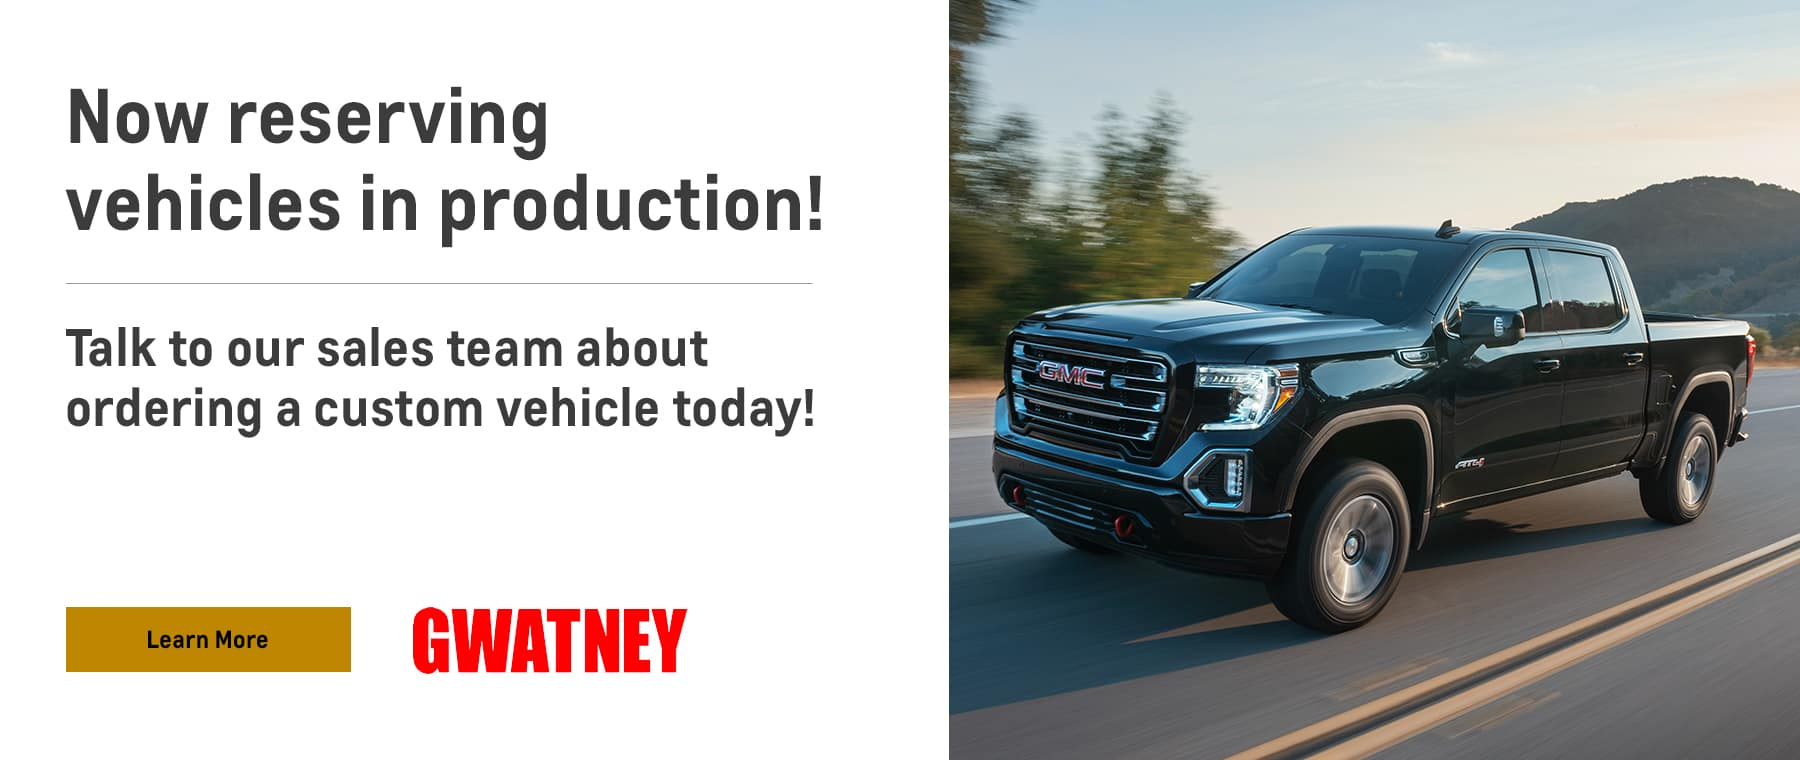 Now reserving vehicles in production!, Talk to our sales team about ordering a custom vehicle today!